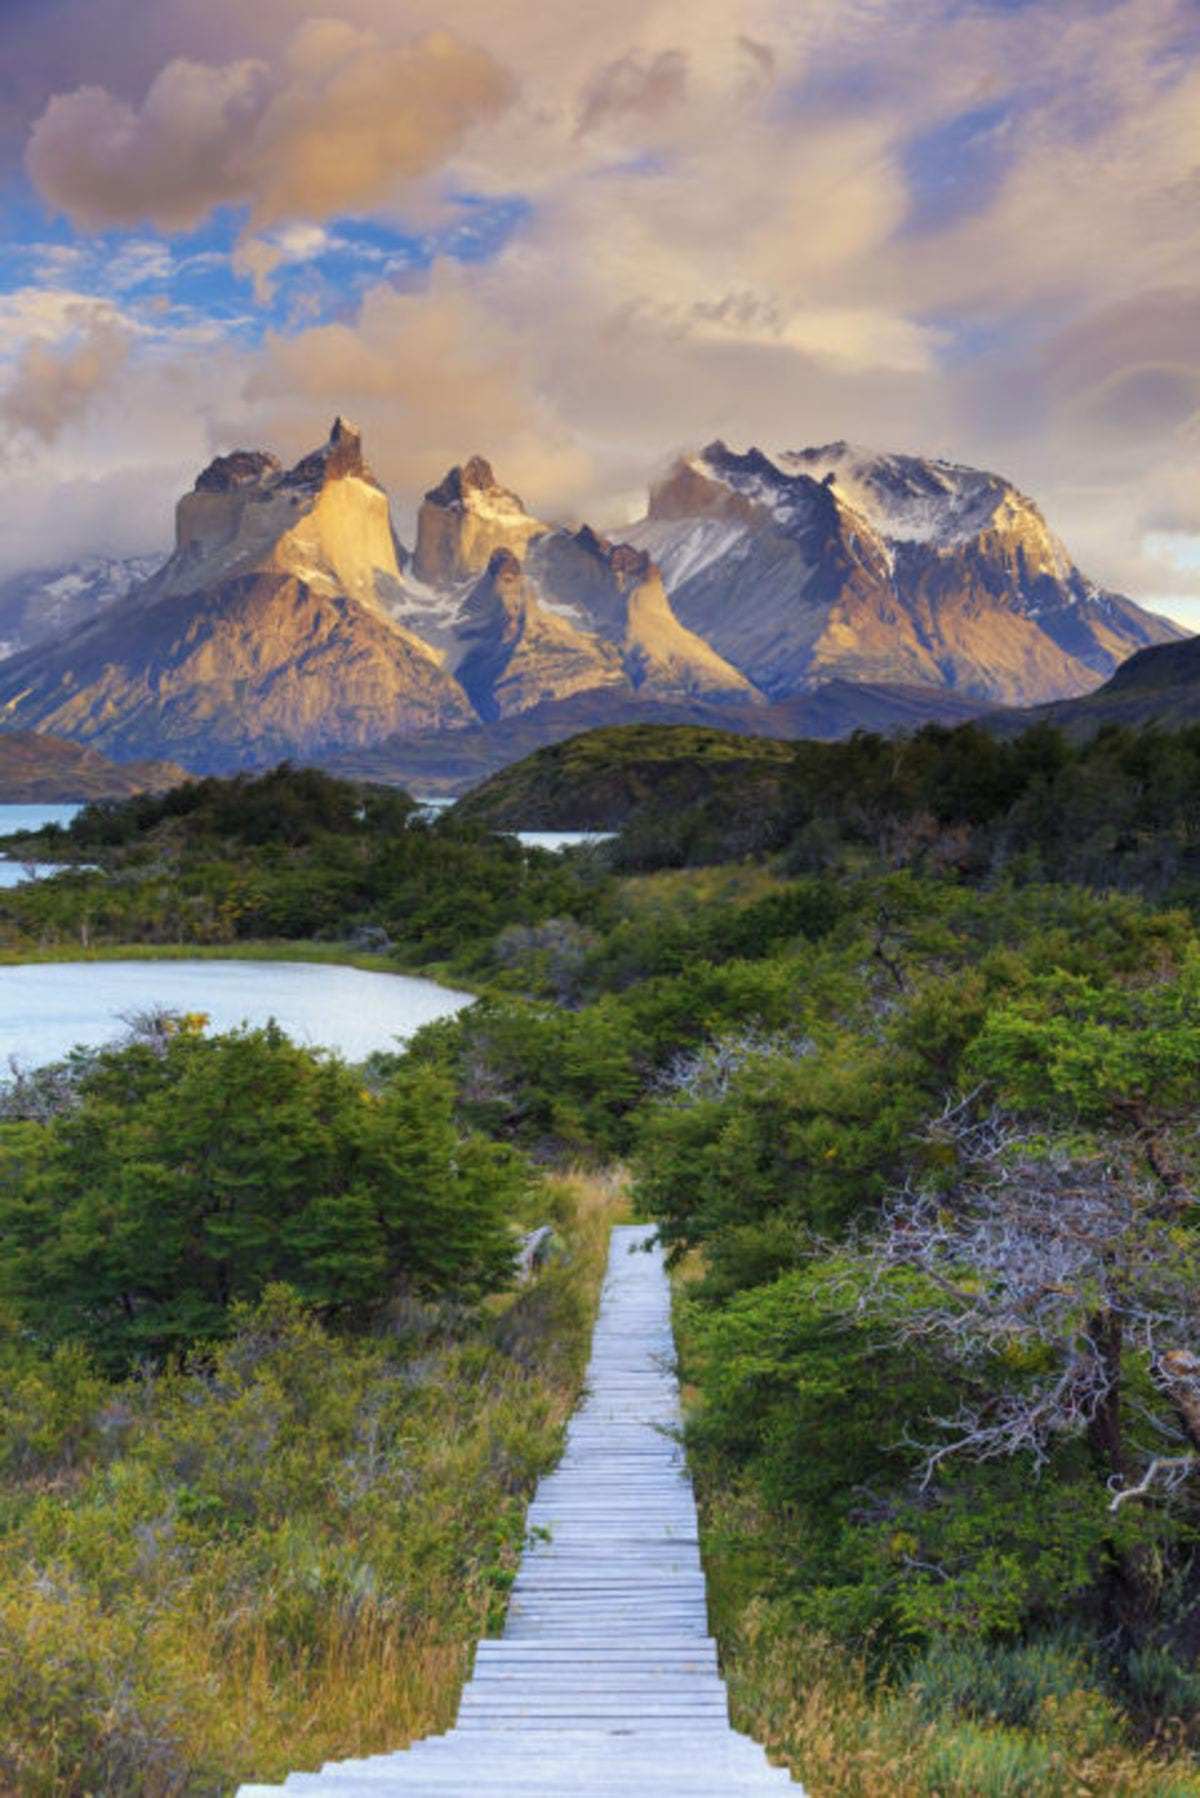 1463773570-capricorn-patagonia-gettyimages-535018751